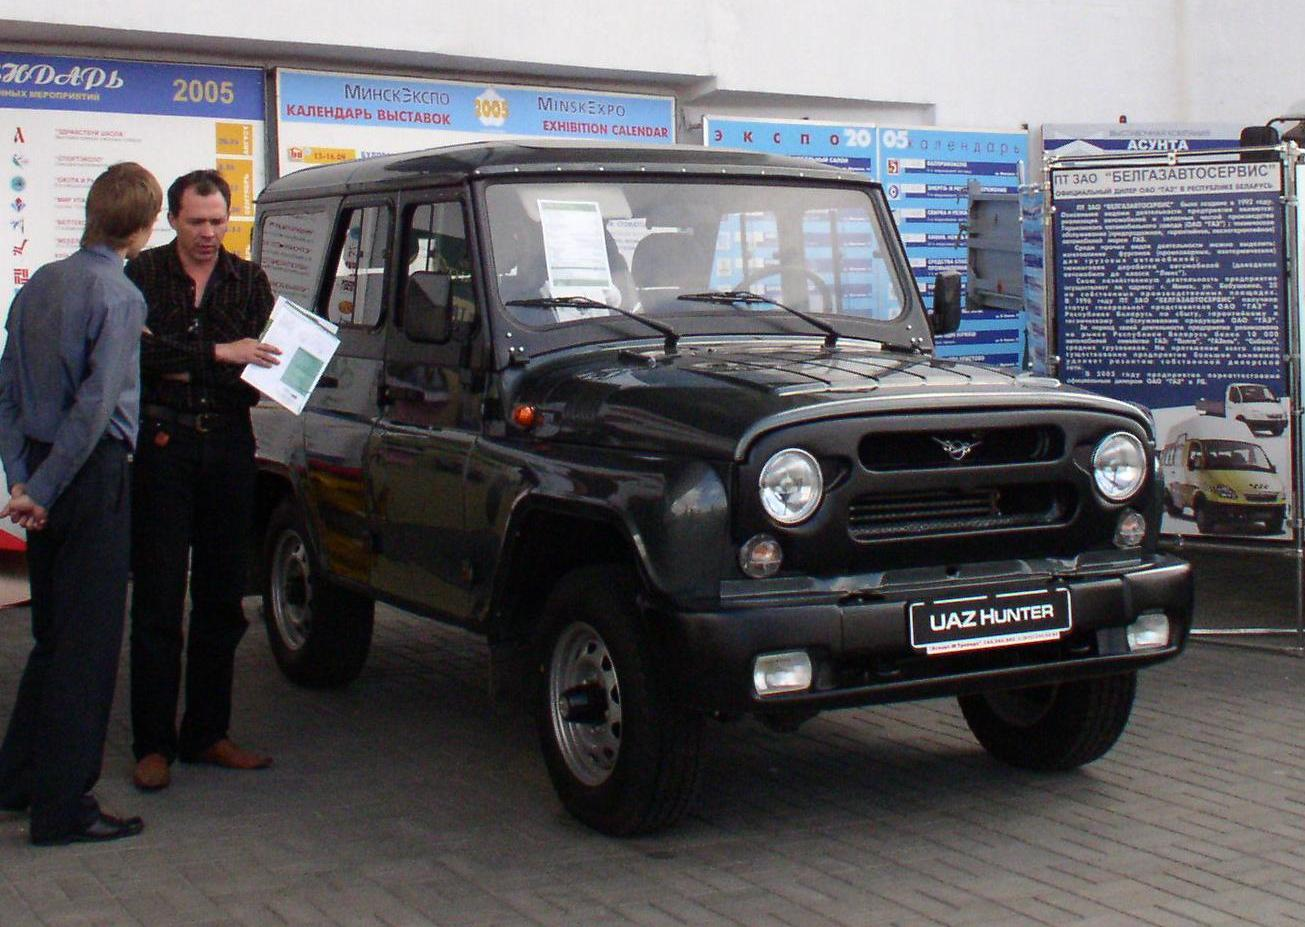 UAZ Hunter SUV